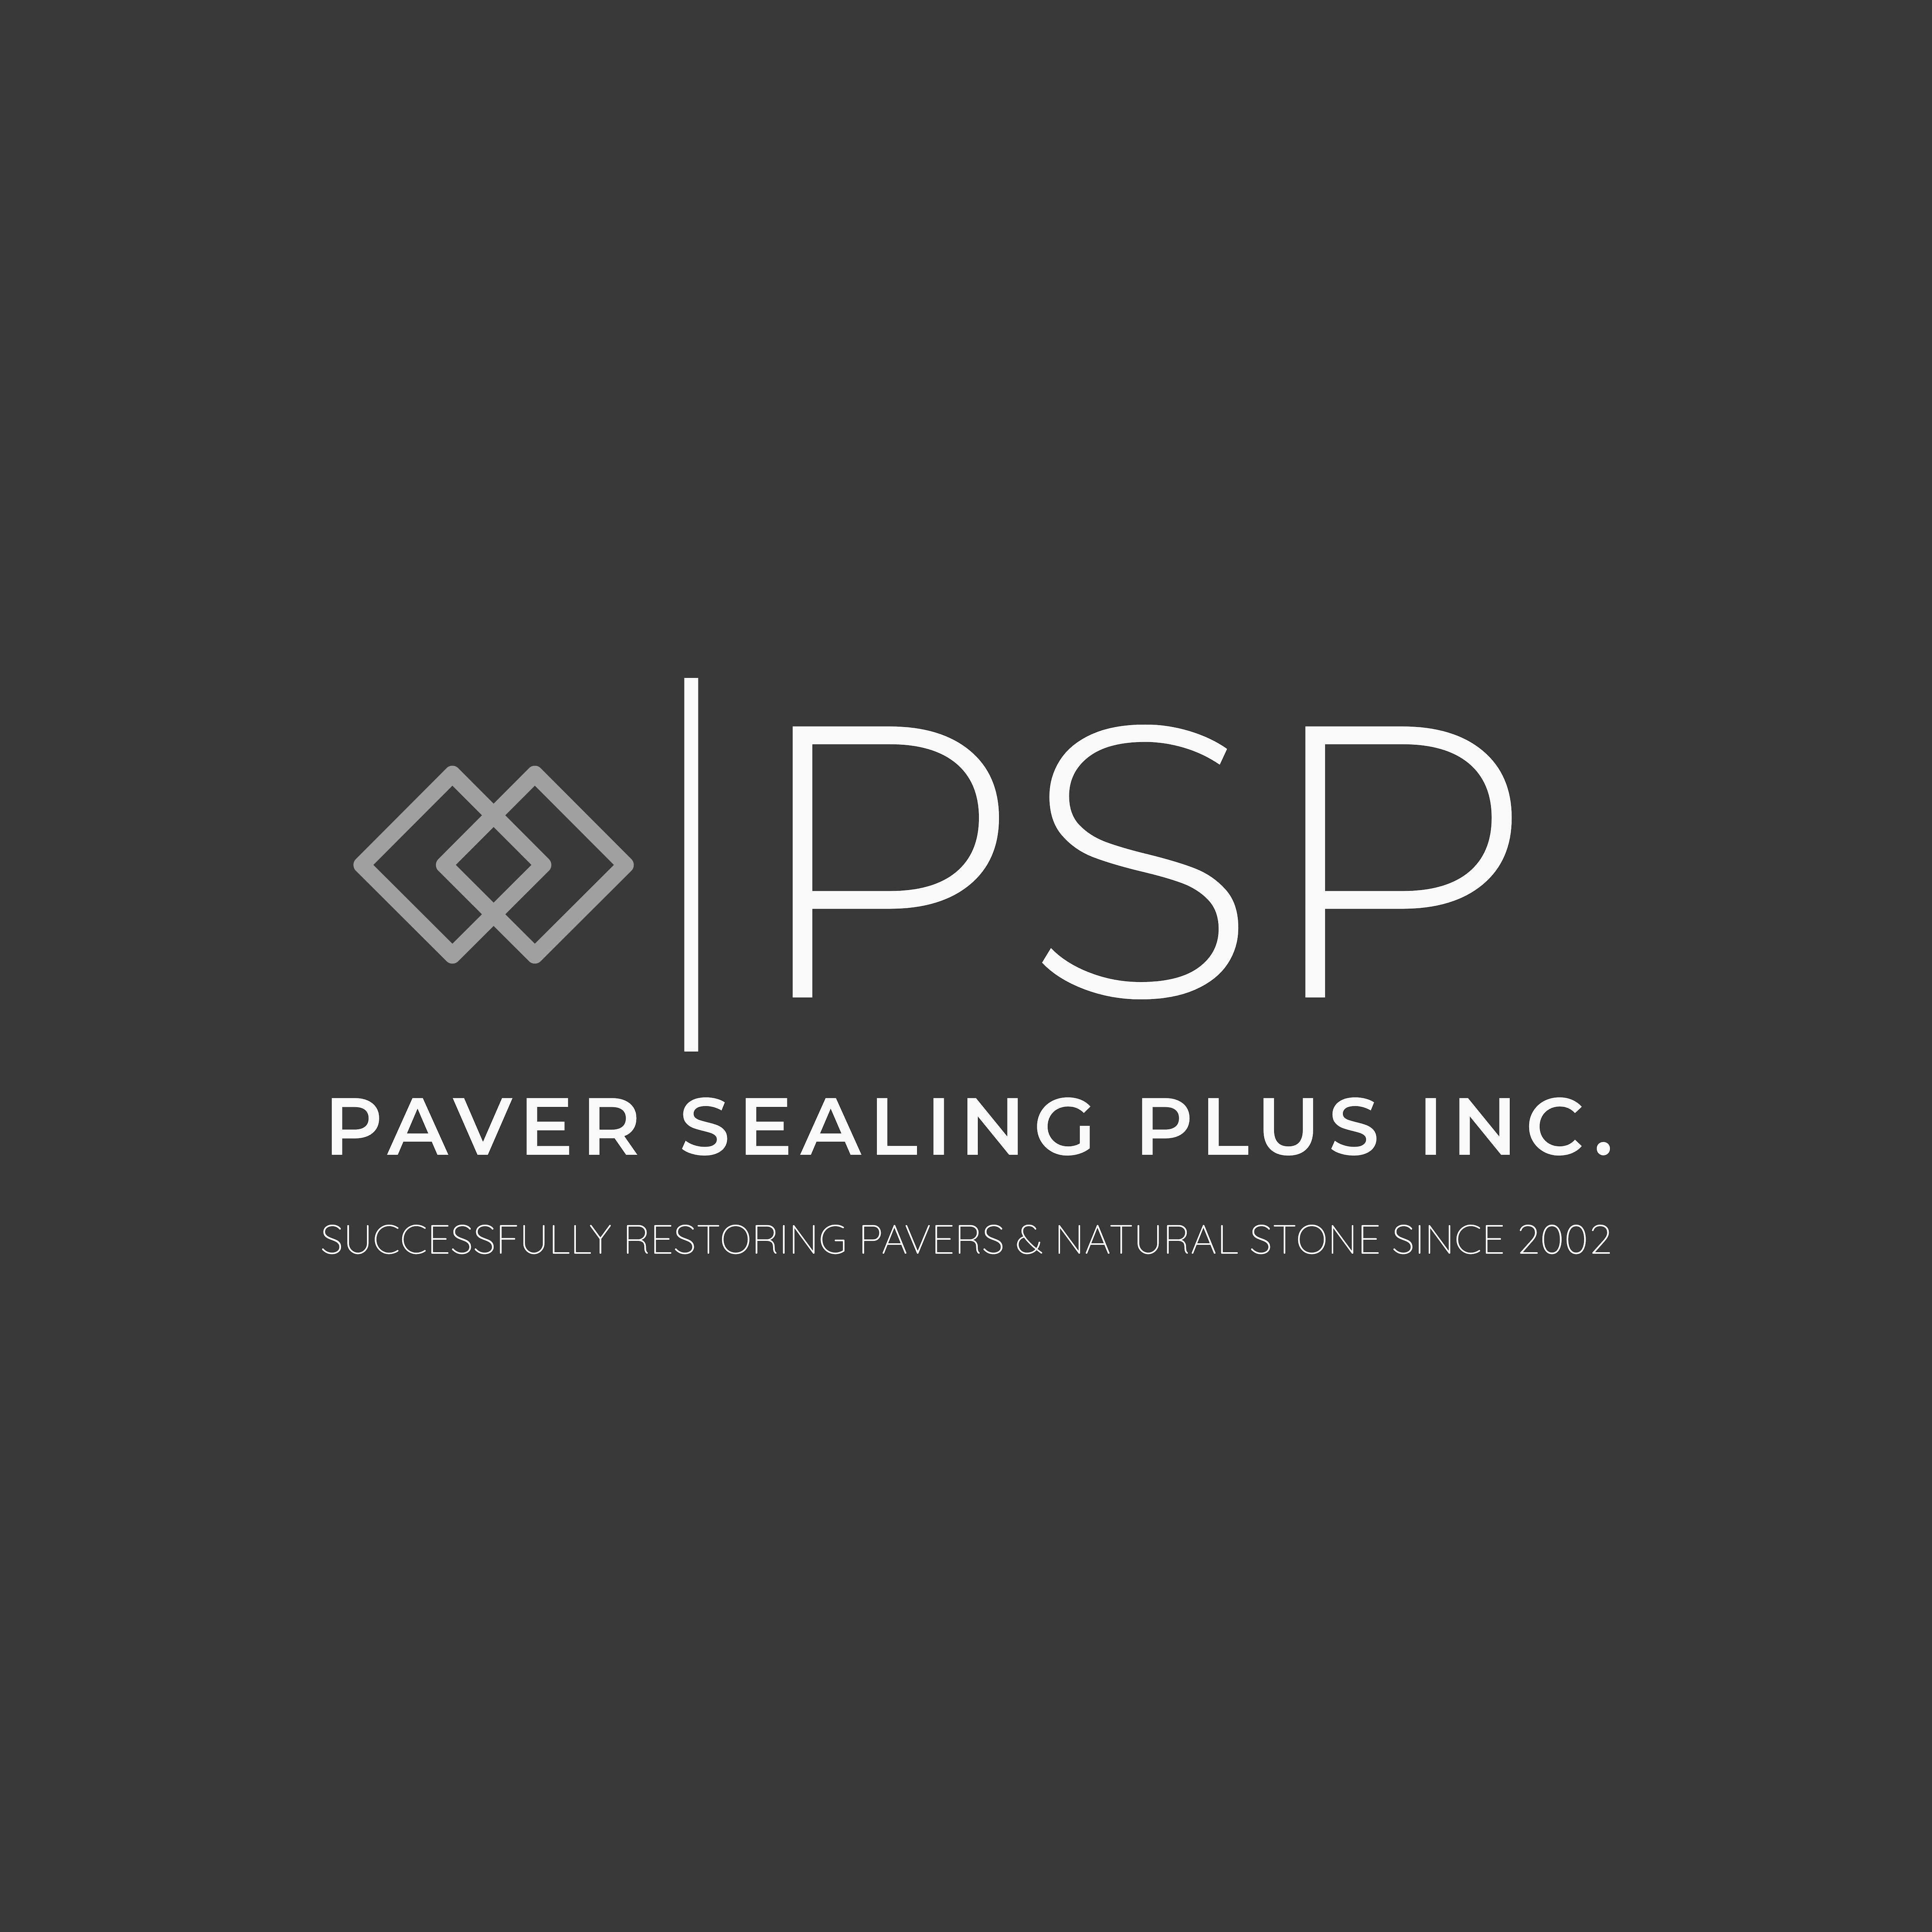 Paver Sealing Plus Inc logo